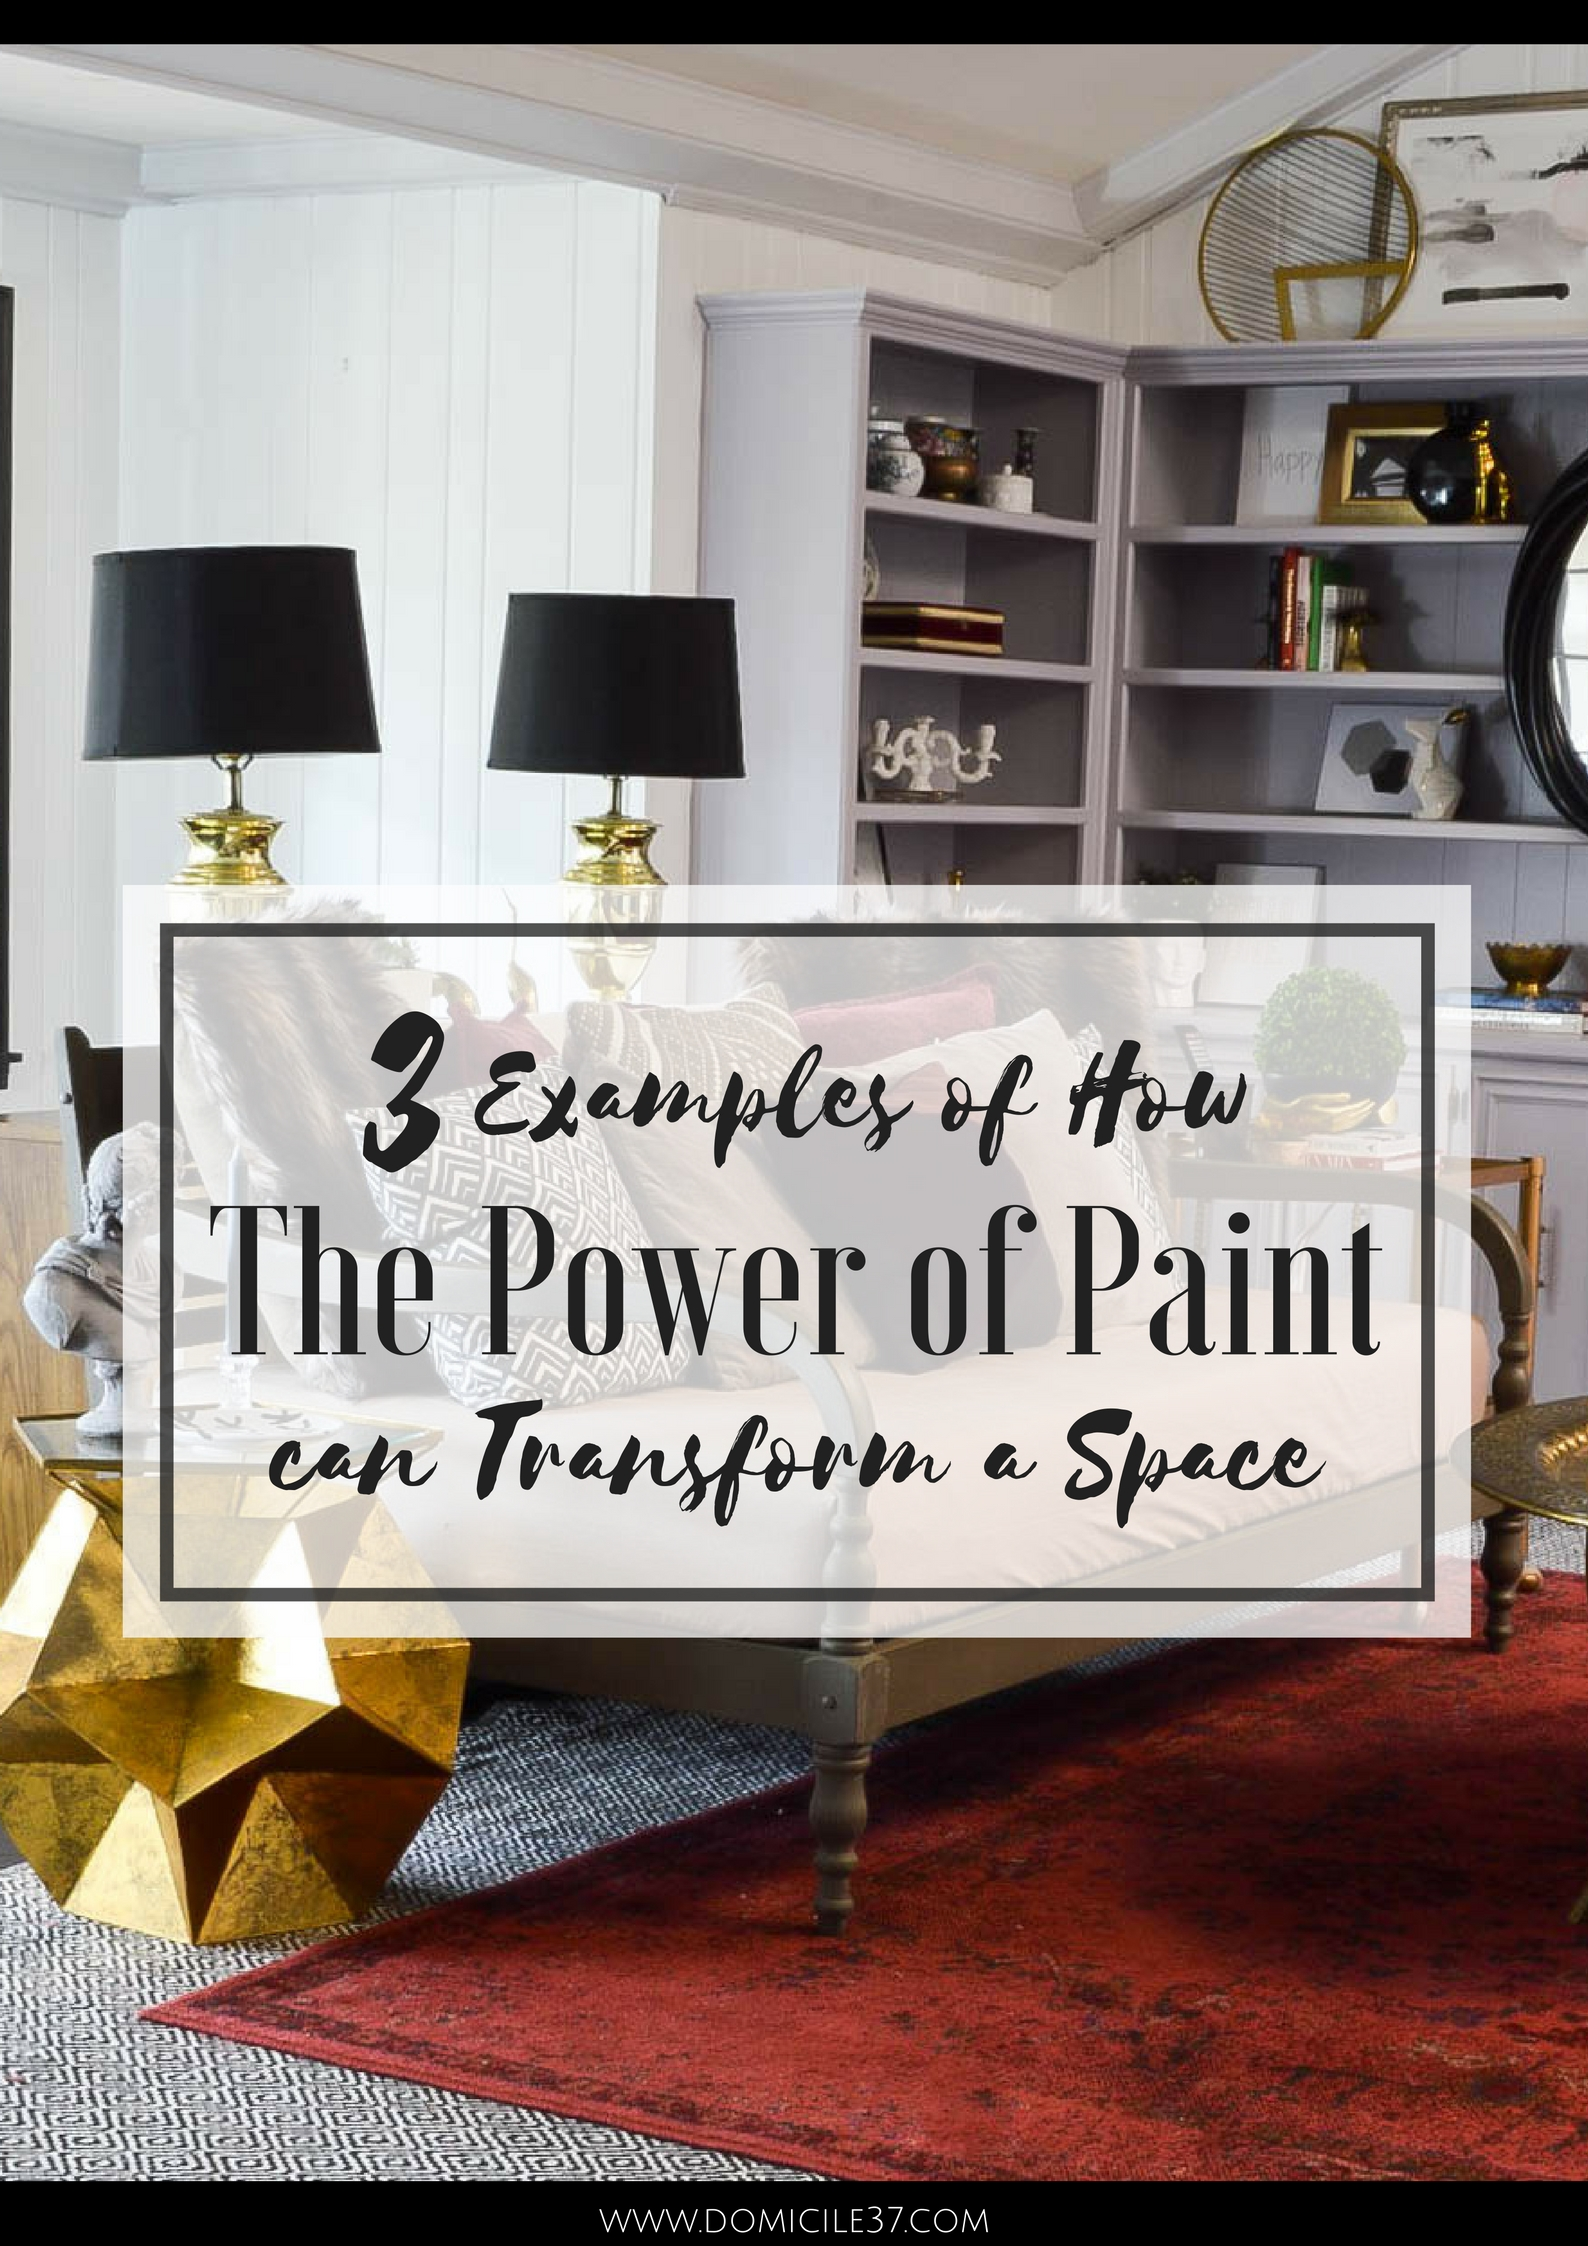 The Power of Paint | Room transformations | How paint transforms a space | Room Makeovers | Vintage Eclectic Living Room | Moody Neutrals | Black Floors | Painted Shelves | Collected spaces | Thrifted decor